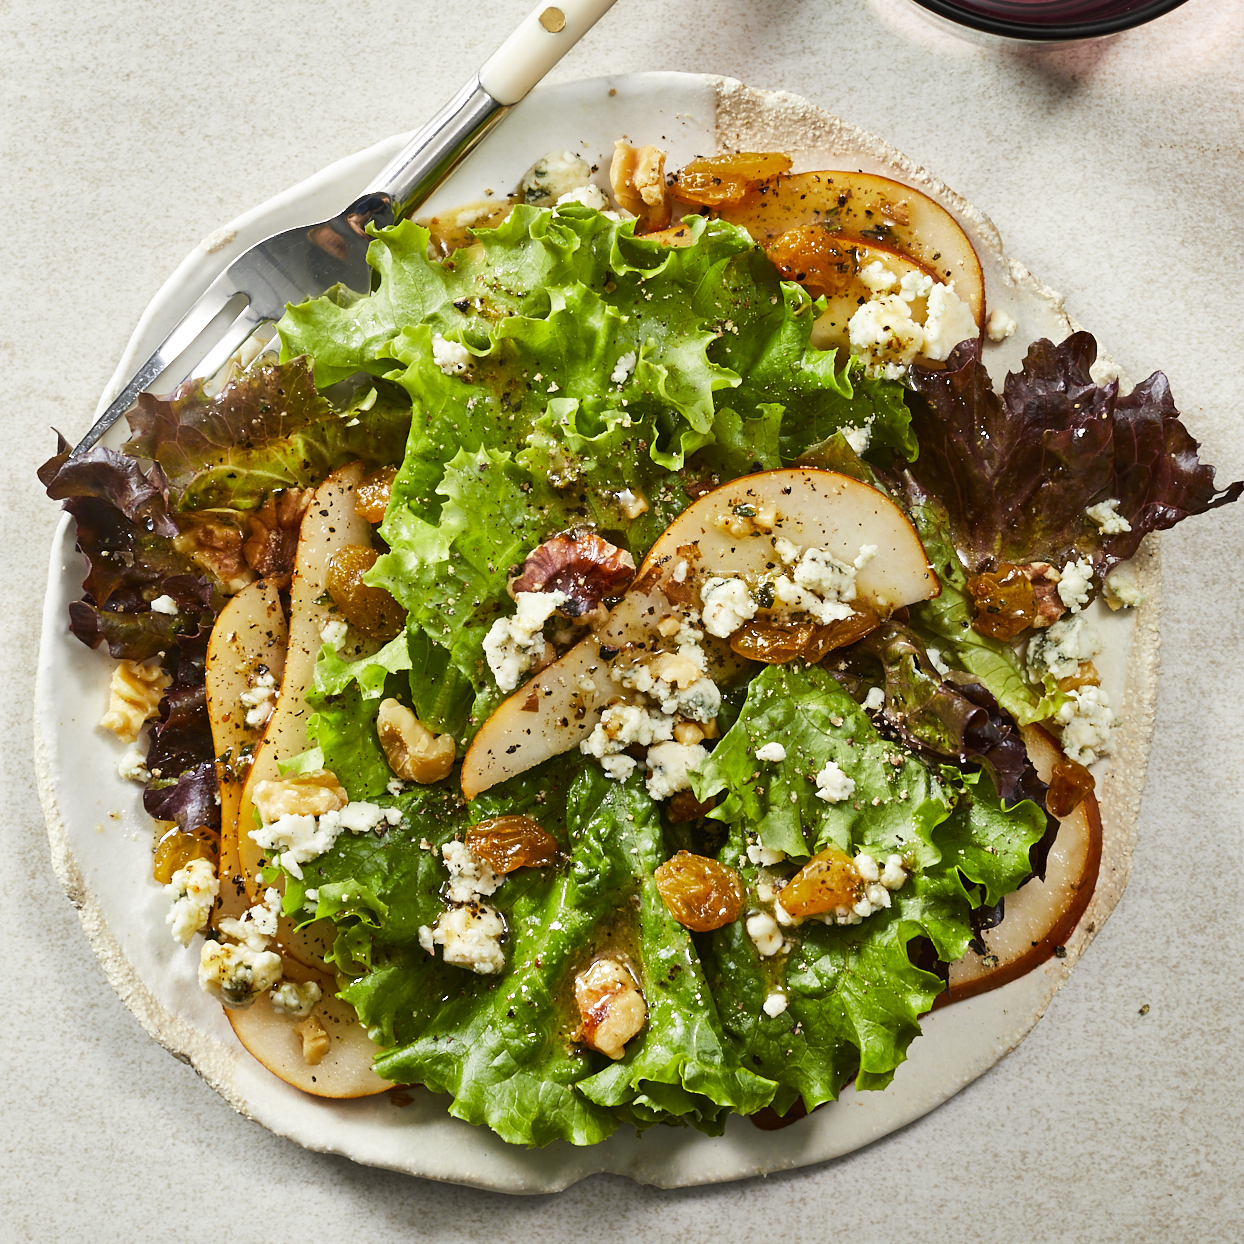 Pear, Gorgonzola & Walnut Salad Sarah Epperson